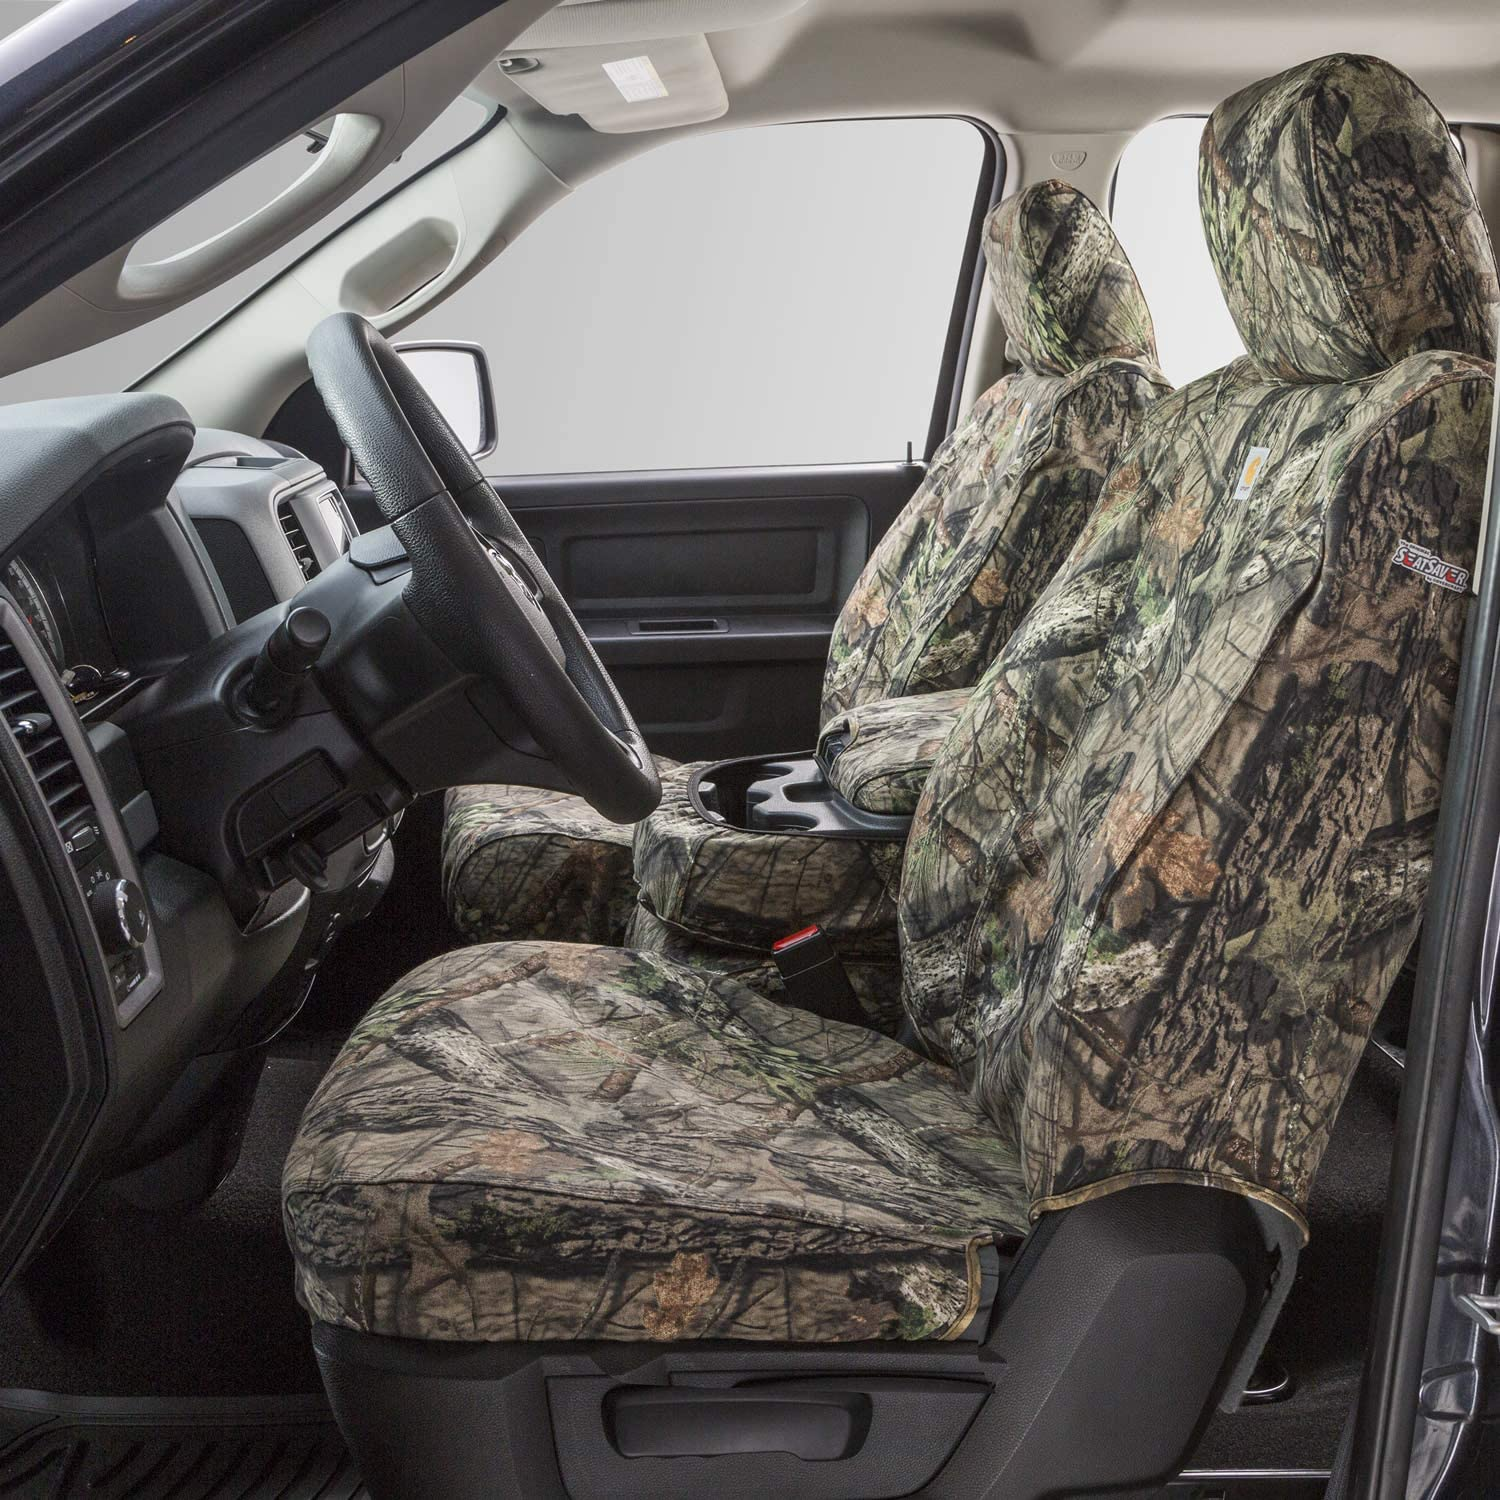 Covercraft Carhartt Mossy Oak Camo SeatSaver Front Row Custom Fit Seat Cover for Select Chevrolet/GMC Models - Duck Weave (Break-Up Country) - SSC3374CAMB